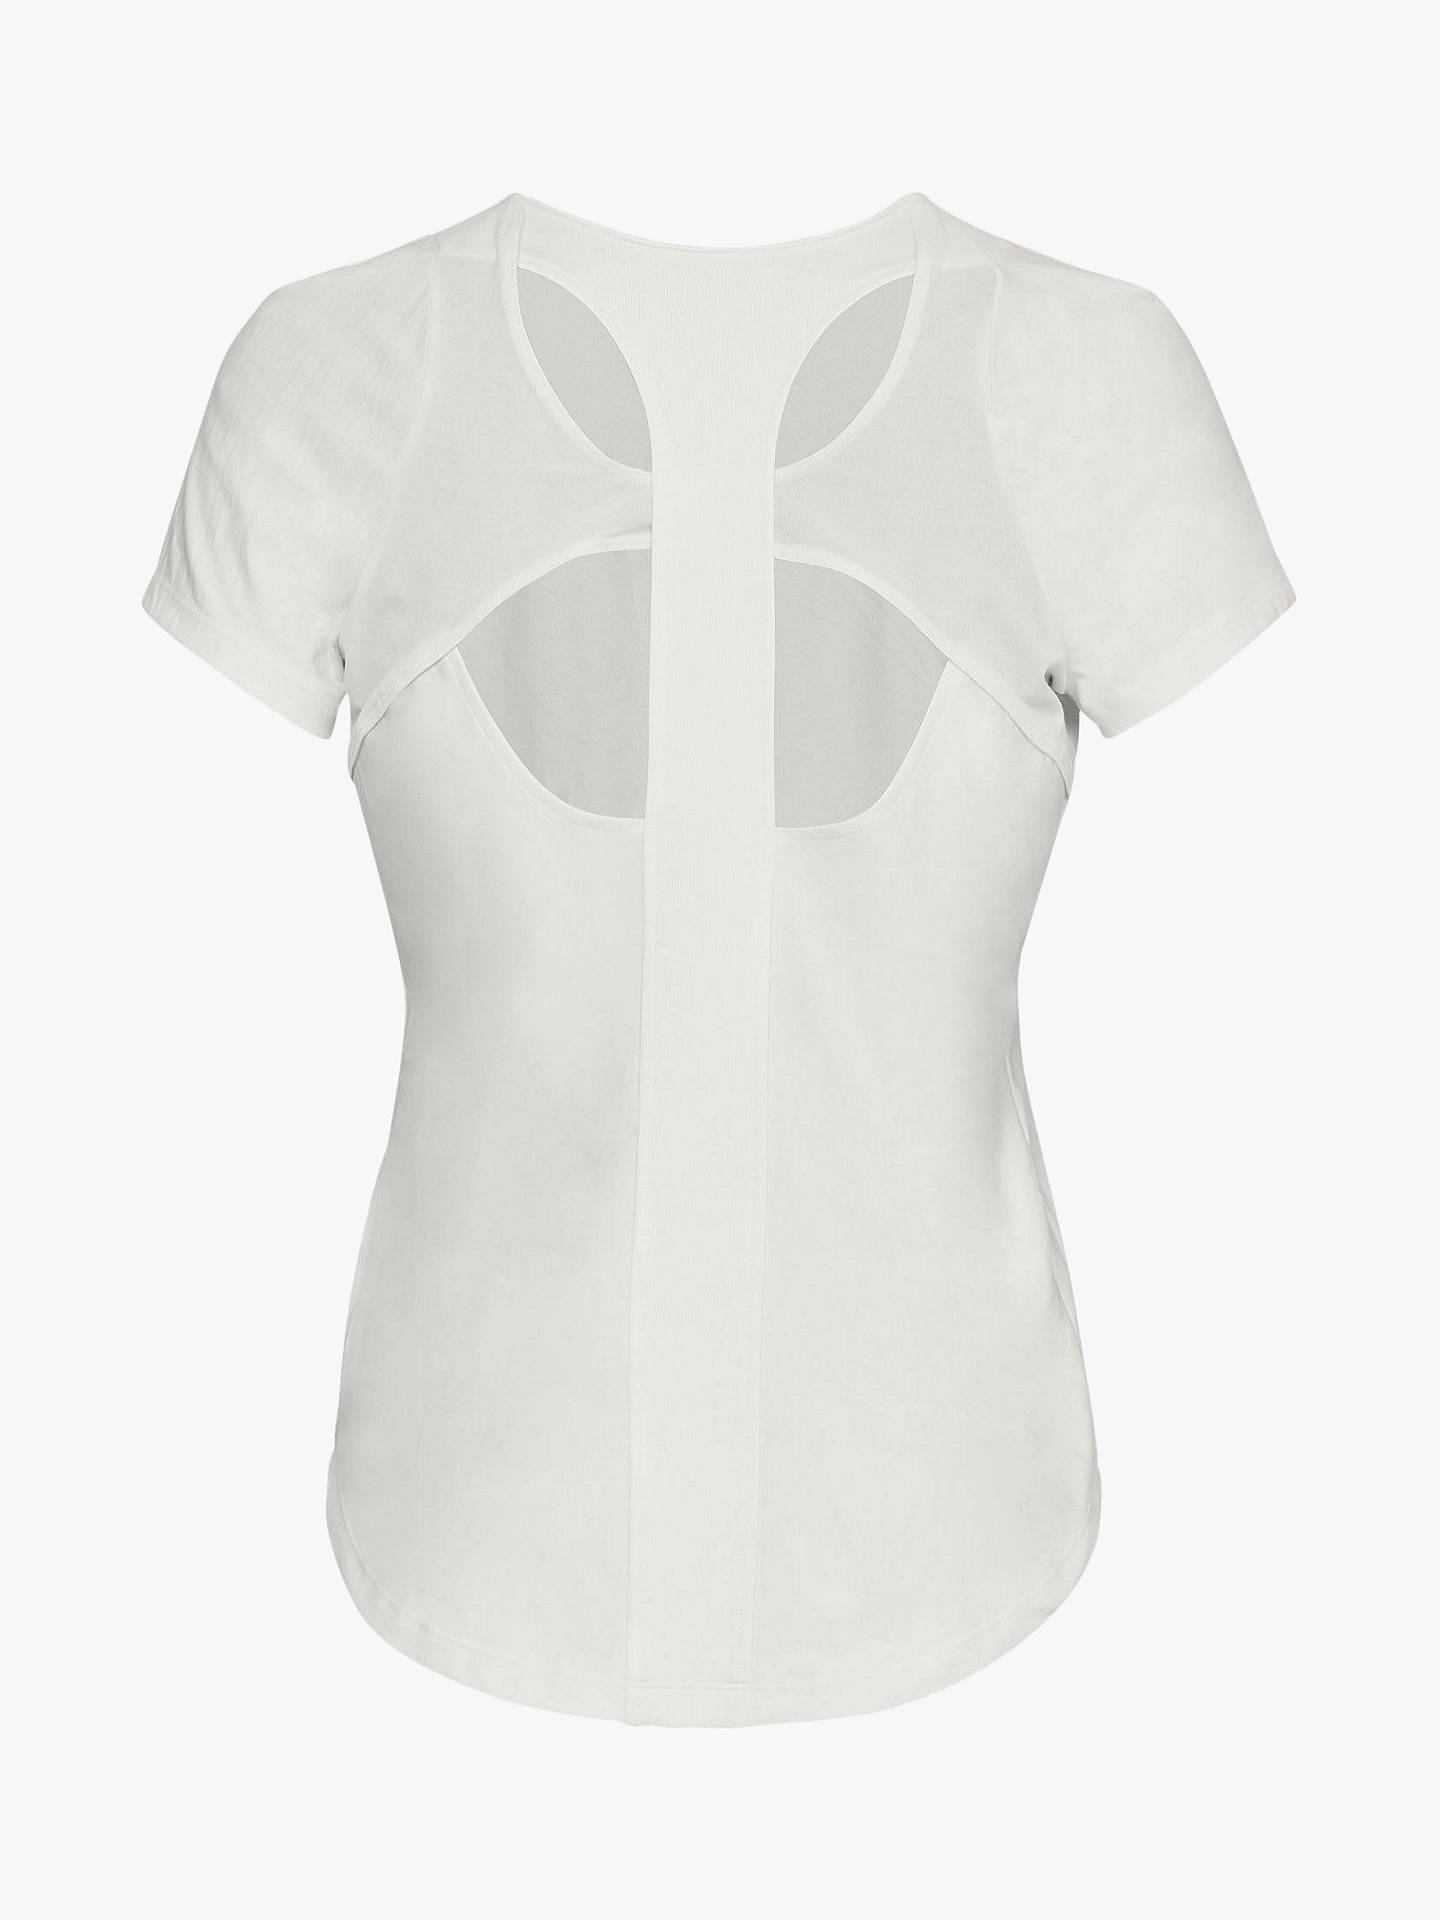 BuyUnder Armour Vanish Short Sleeve Top, White, S Online at johnlewis.com